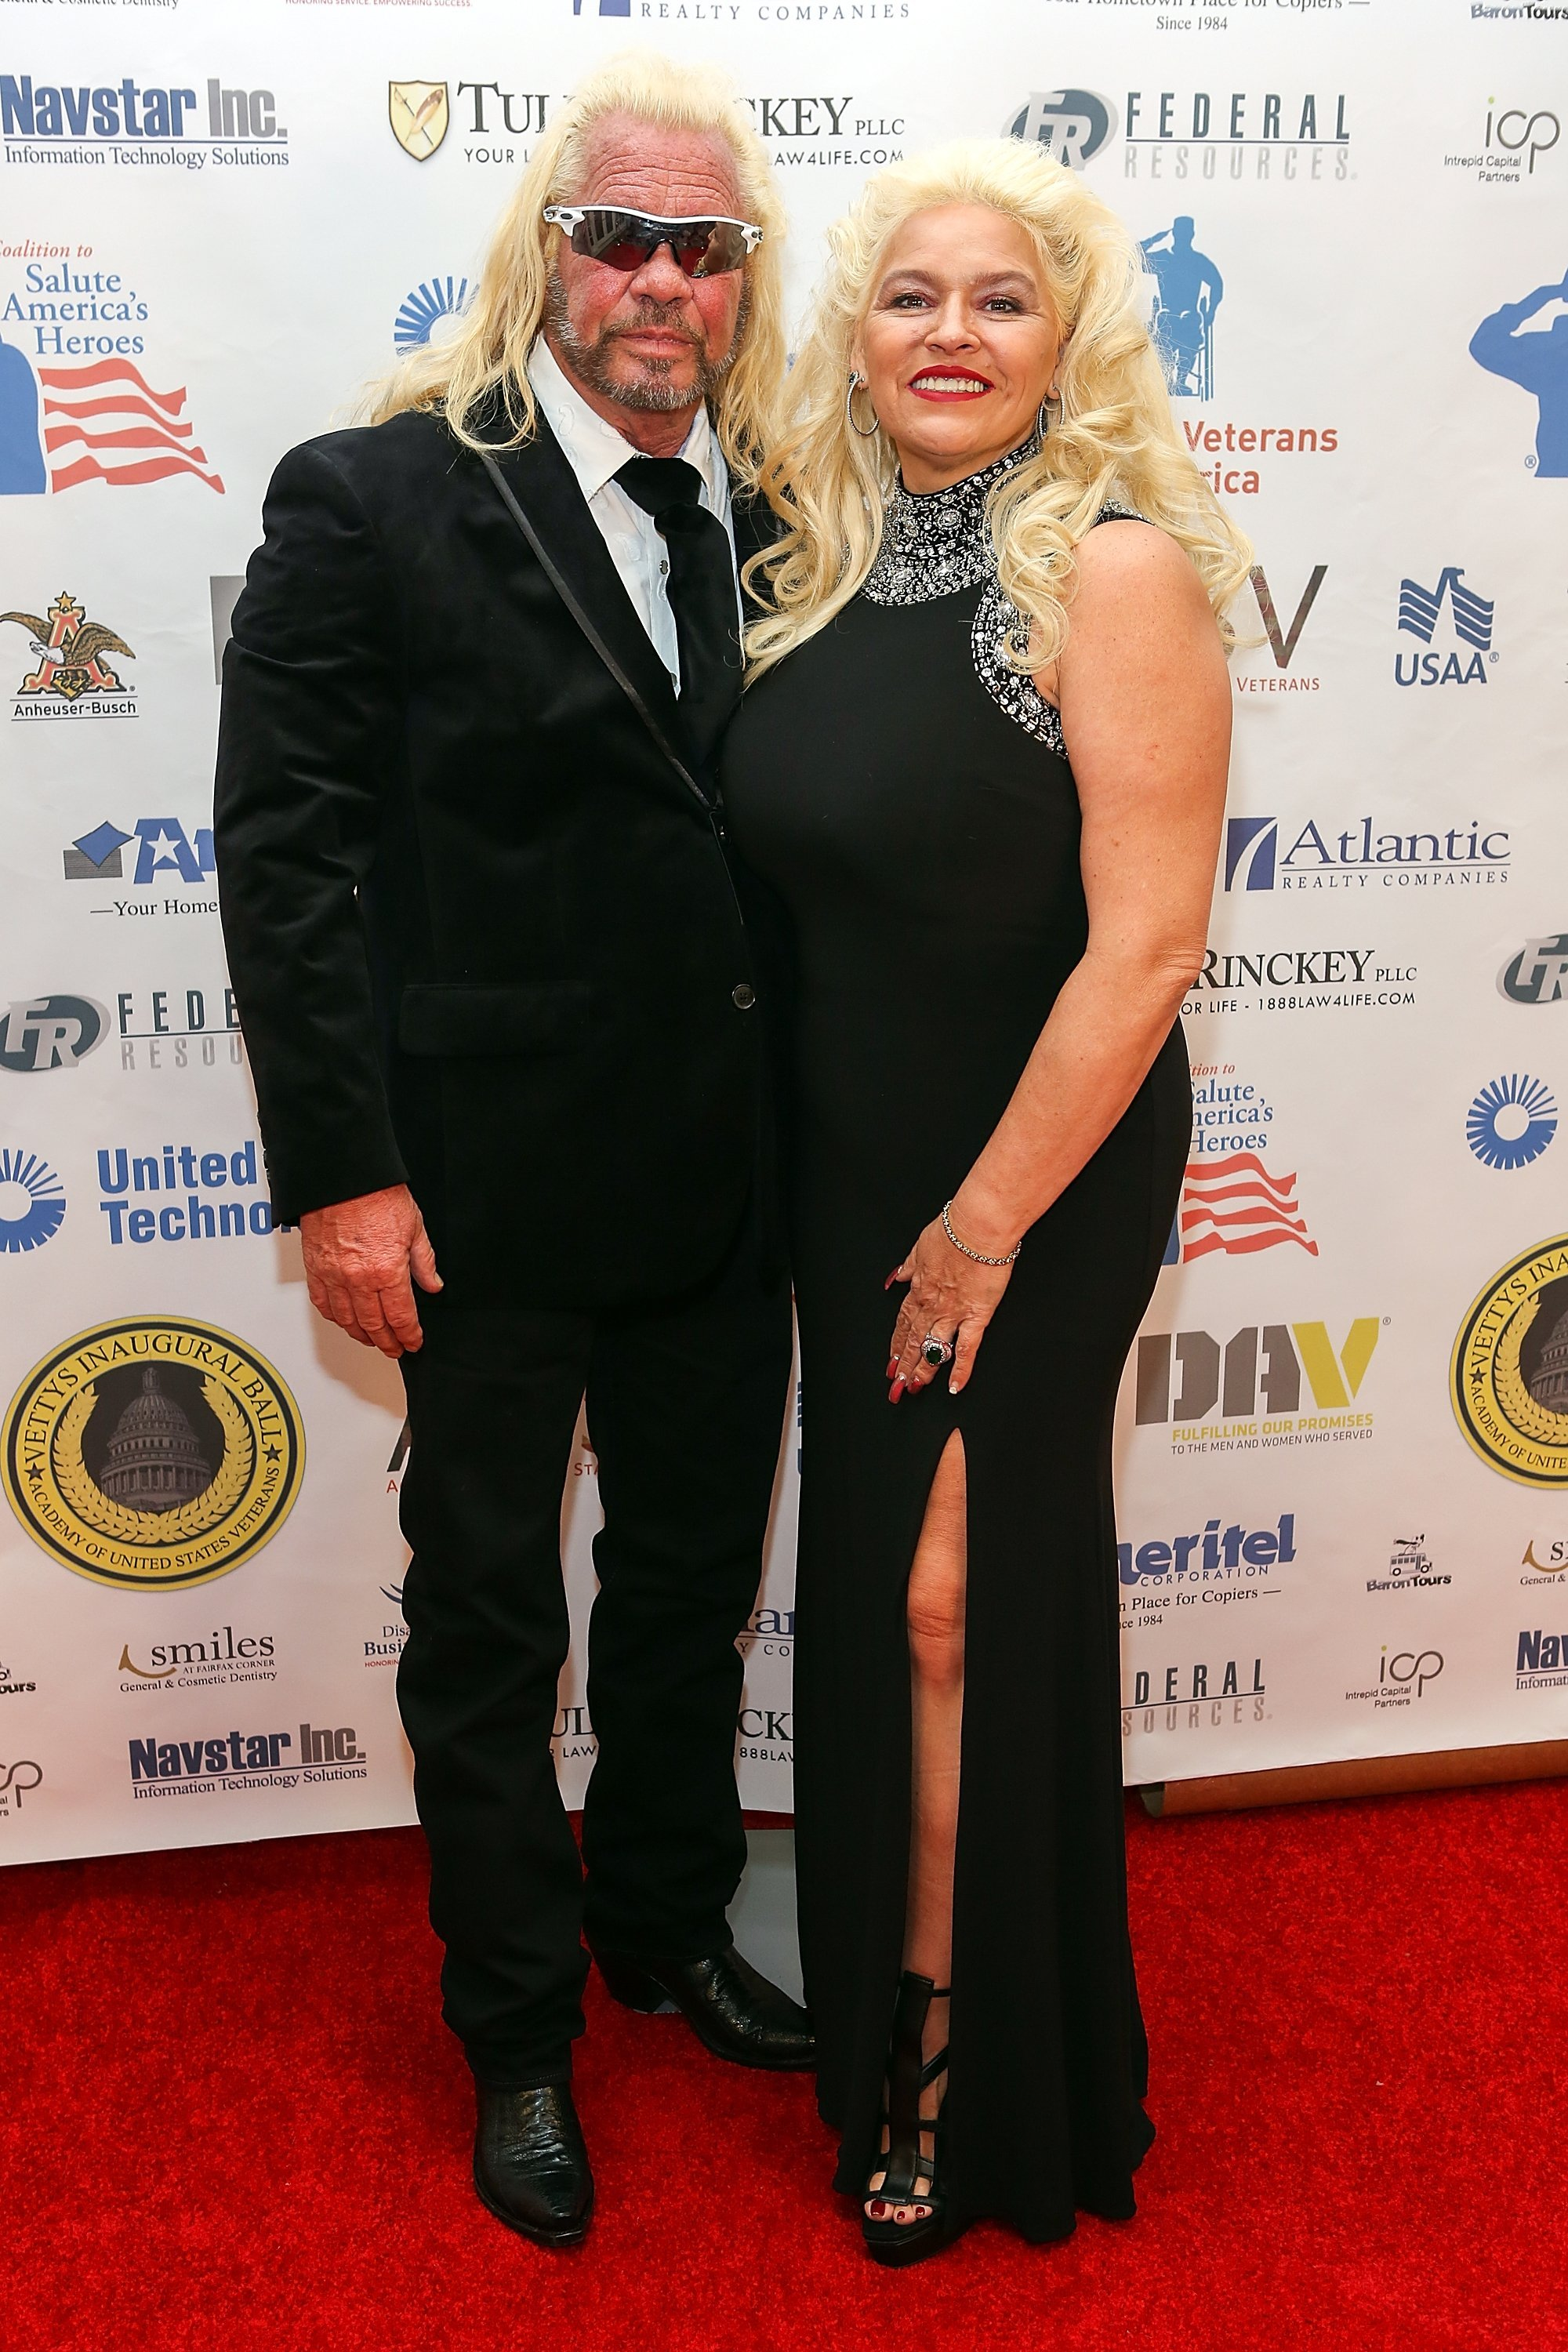 "Duane 'Dog the Bounty Hunter"" Chapman and Beth Chapman attend the Vettys Presidential Inaugural Ball on January 20, 2017, in Washington, DC. 